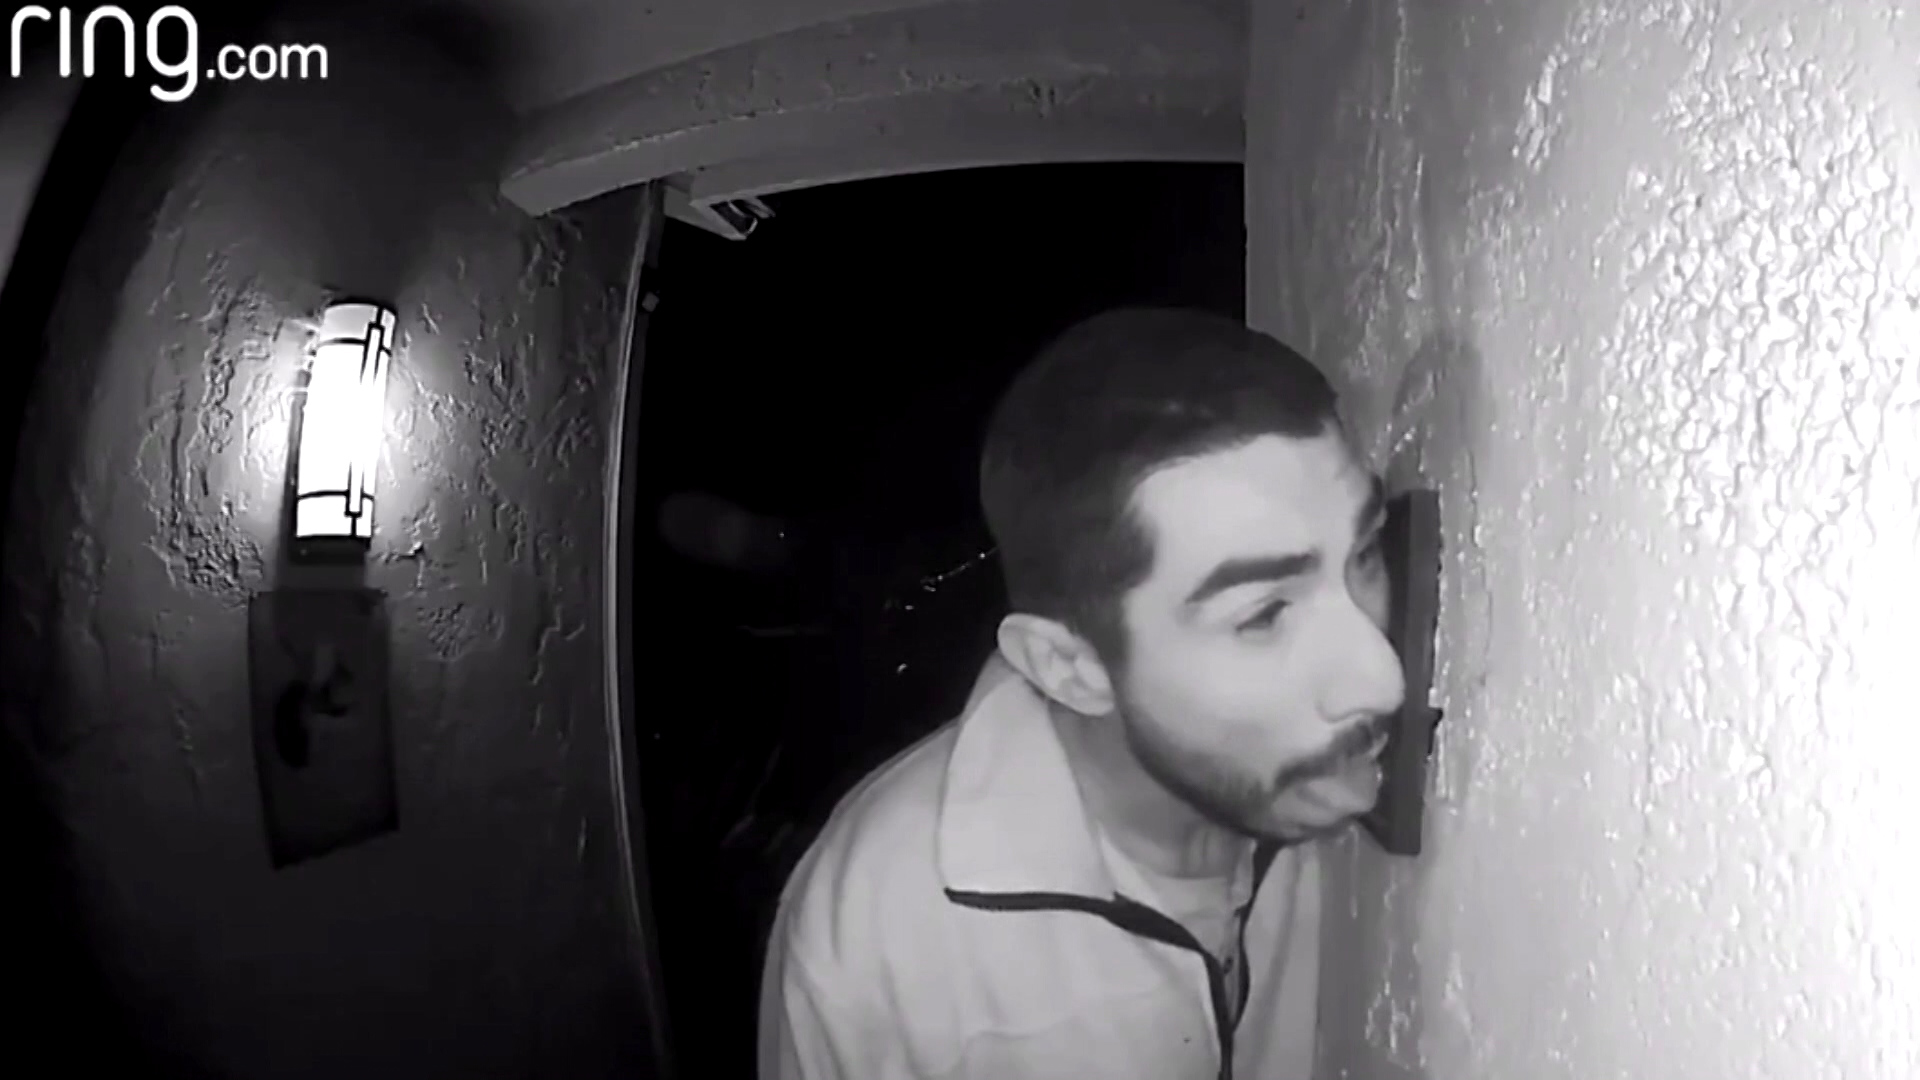 Camera catches man licking doorbell